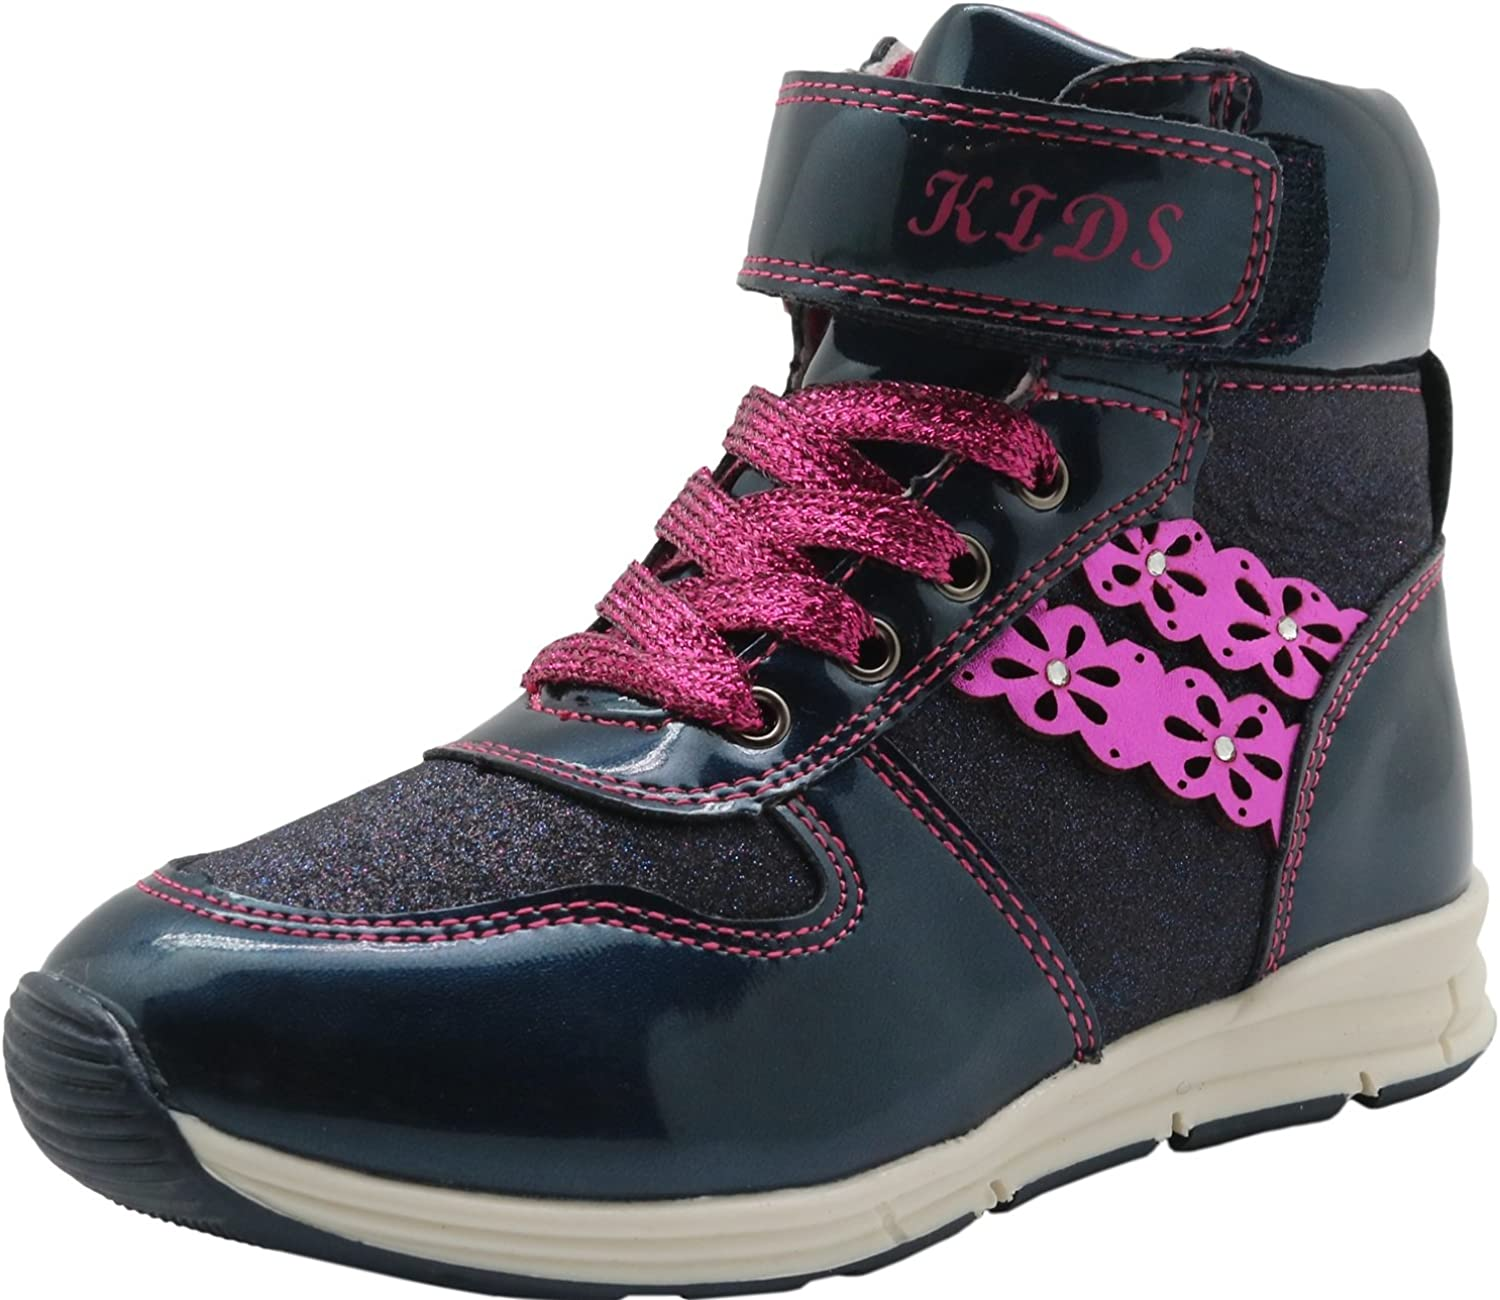 Apakowa Little Kids Shoes Girls Ankle Combat Boots Lace Up /& Side Zipper Closure Shiny Decorated Sneaker